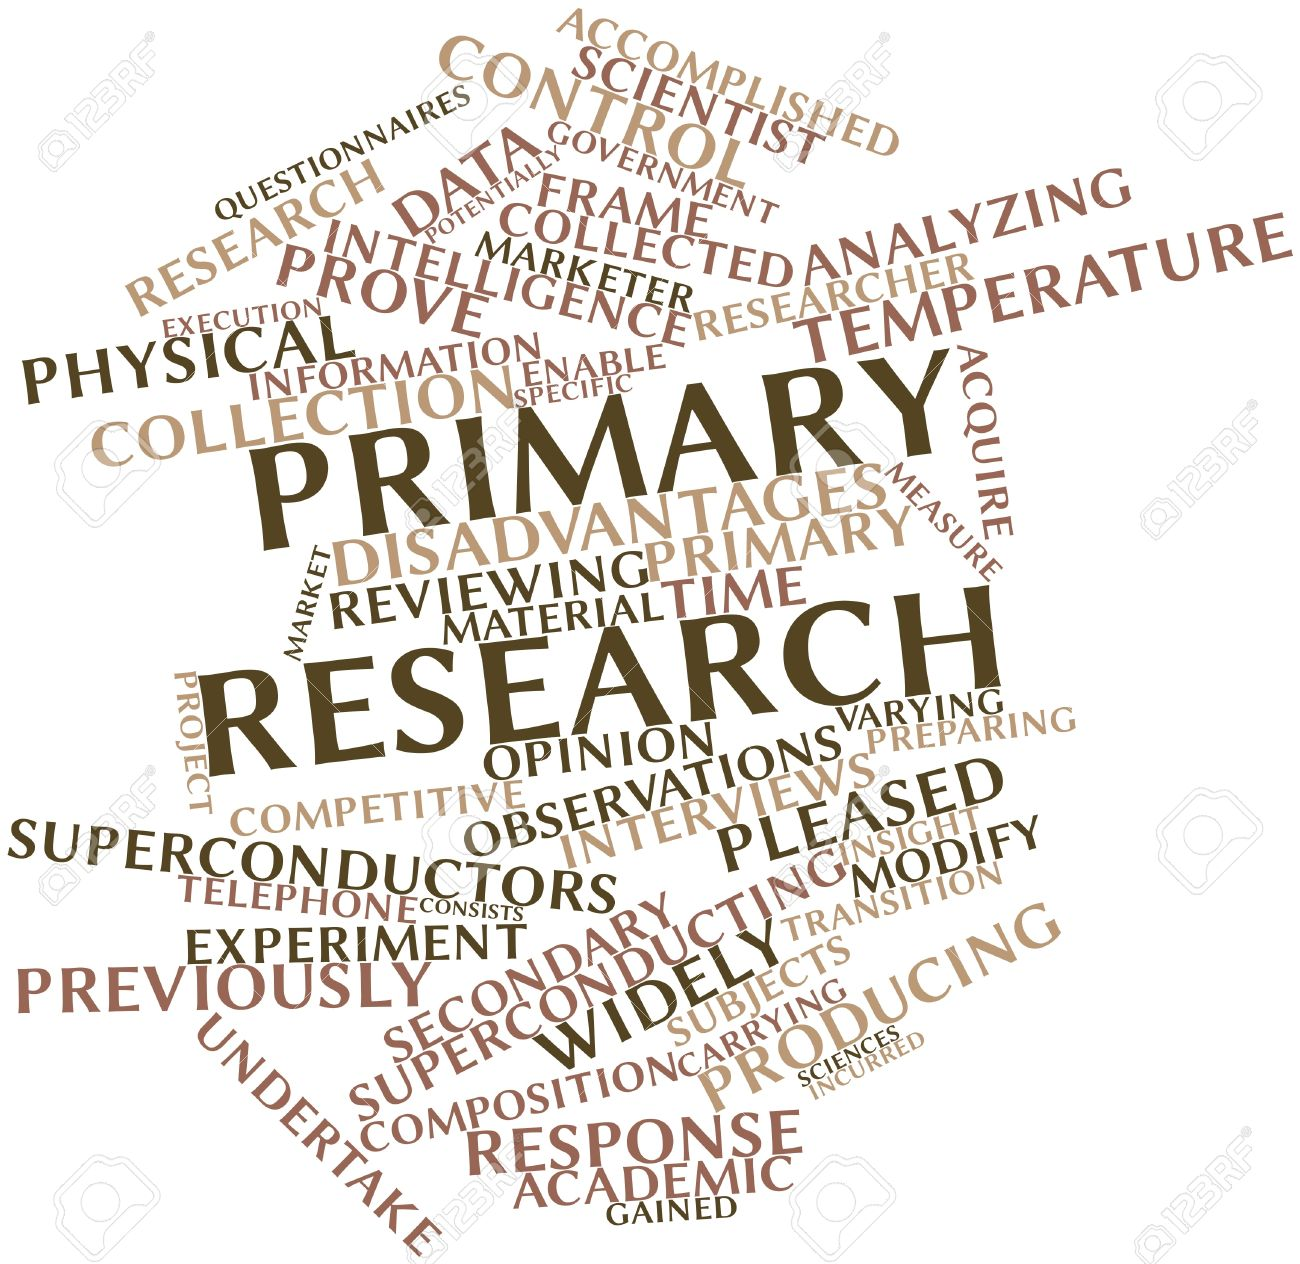 media primary secondary research Primary & secondary sources 1 primary not use wikipedia as either aprimary or secondary source in yourresearchuse wikipedia as a starting point foryour research and as a way to locateactual primary and secondary sources 19 wikipedia 20 social media - goldmine or landmine.